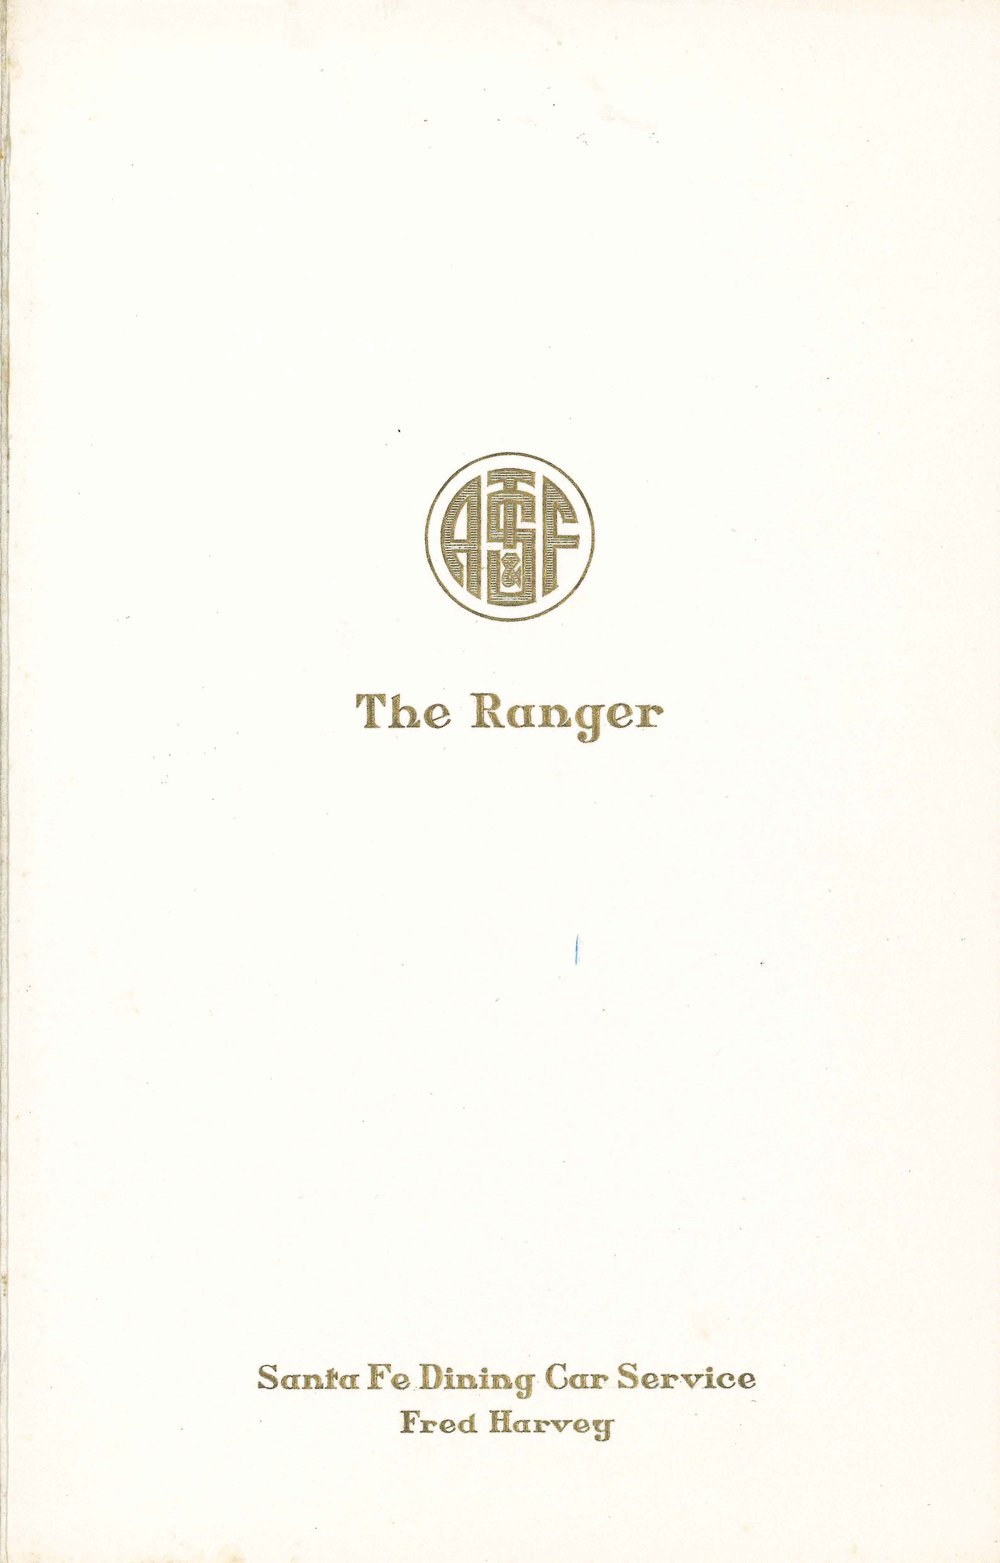 Santa Fe The Ranger Menu1 Small.jpg